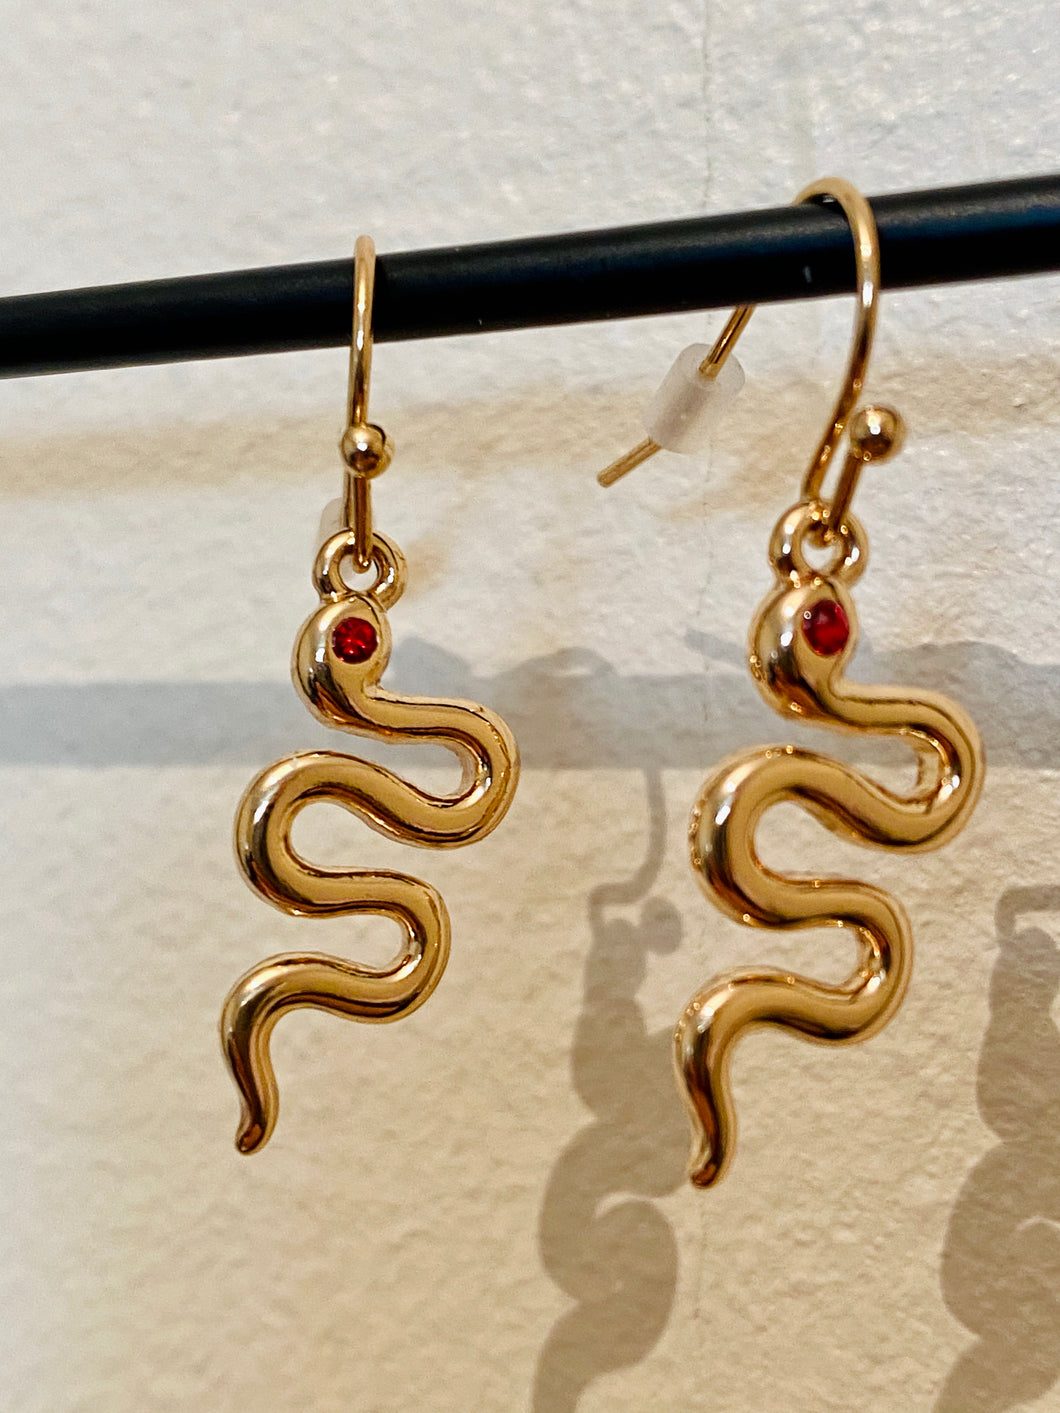 Vintage Inspired Snake Earrings in Gold with Red Gem Detail